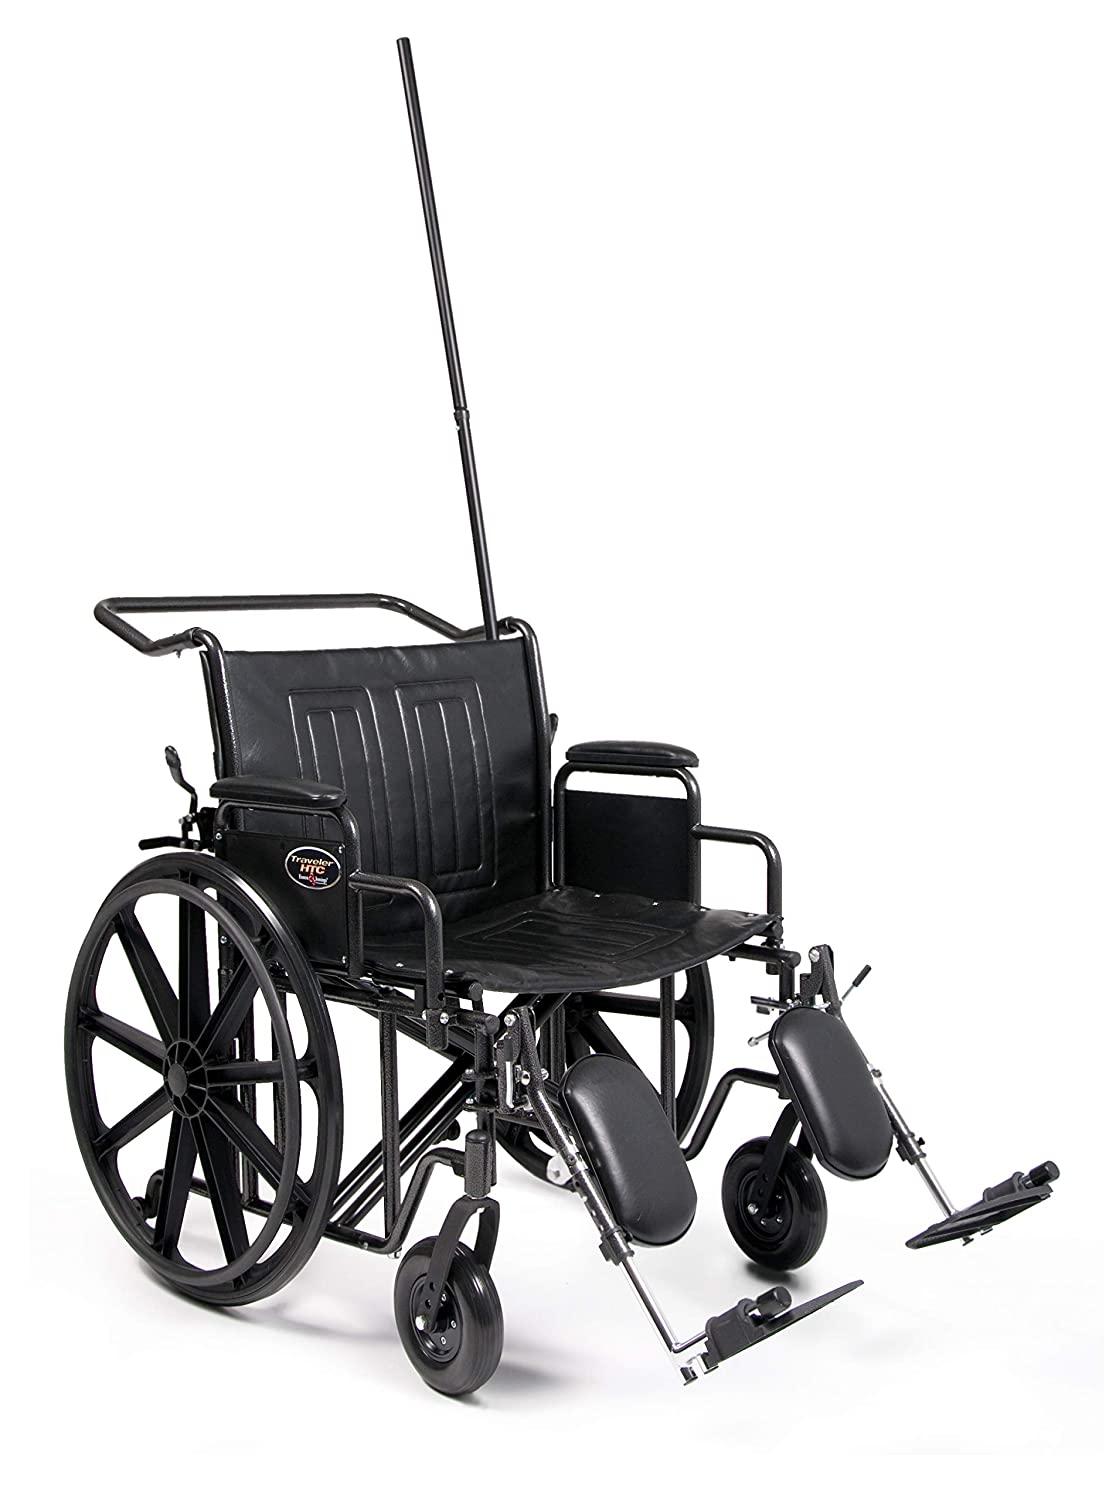 Everest Jennings Traveler HTC Bariatric Tra Recommendation Ranking TOP5 2-in-1 Wheelchair